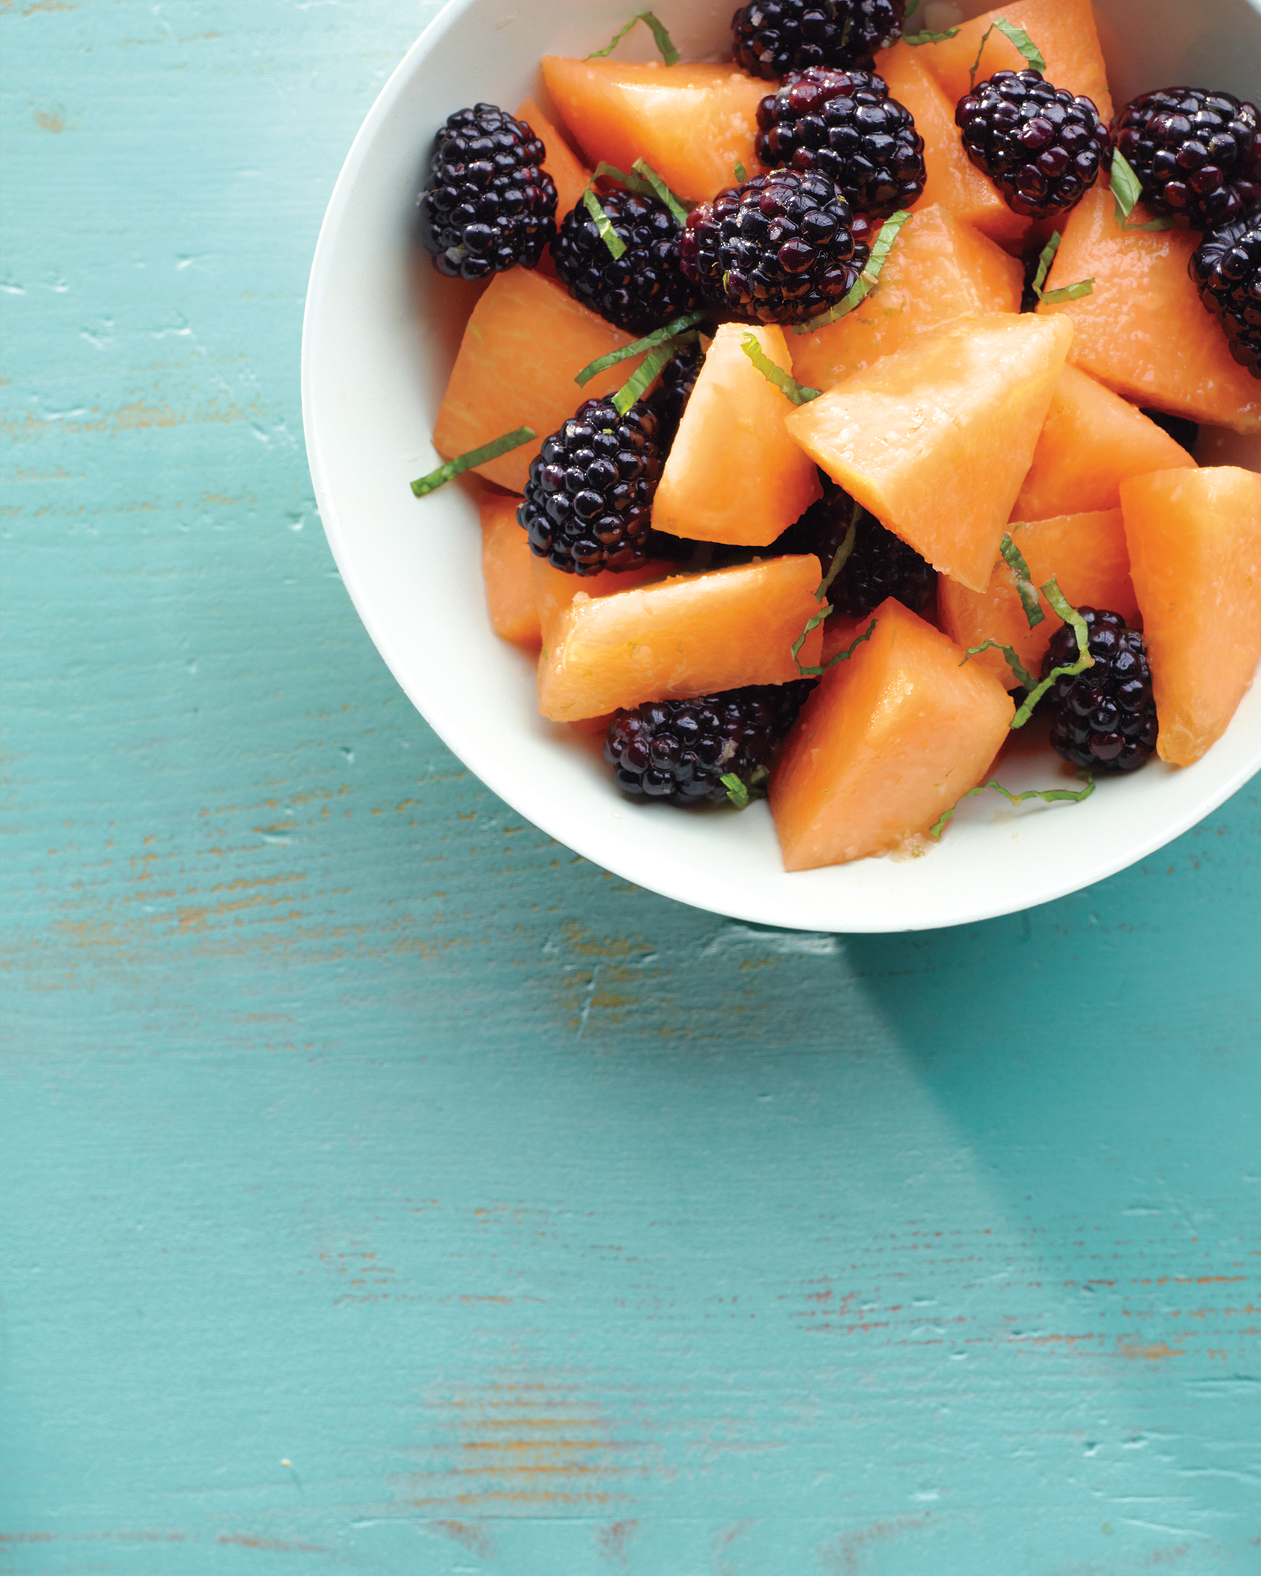 blackberry-cantaloupe-salad-med108588.jpg